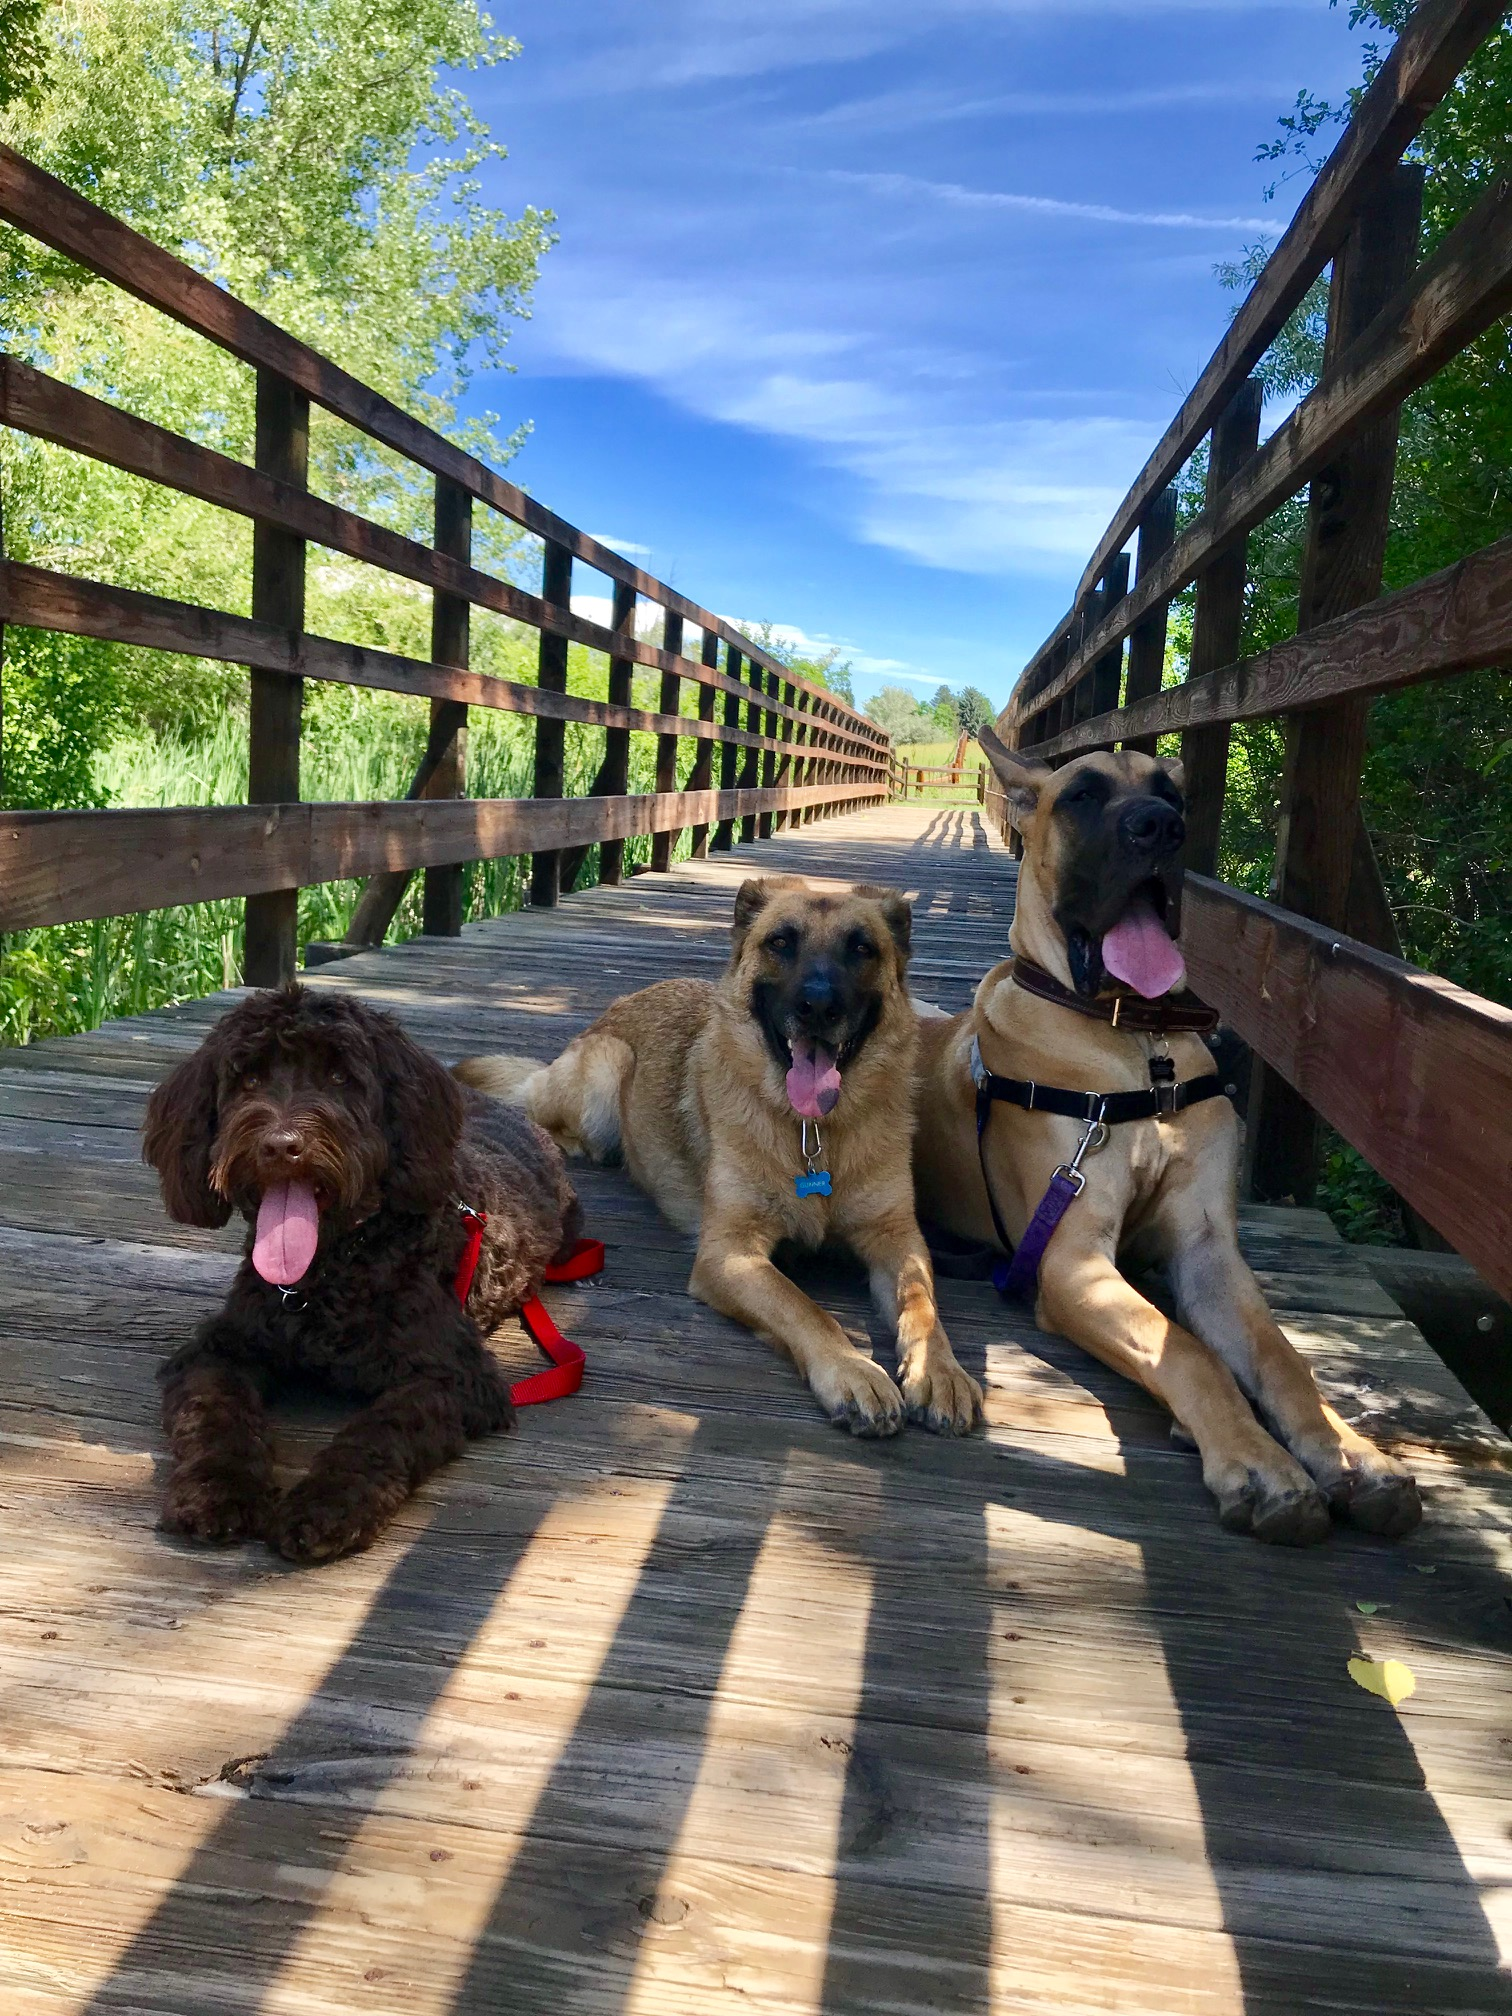 Bennie, Gunner & Prince stopping for a quick pic during our hike in Cherry Hills. All 3 pups highly benefit from our fun, mentally and physically engaging fitness hikes. Helping each of them become more responsive and relaxed in their daily lives :)